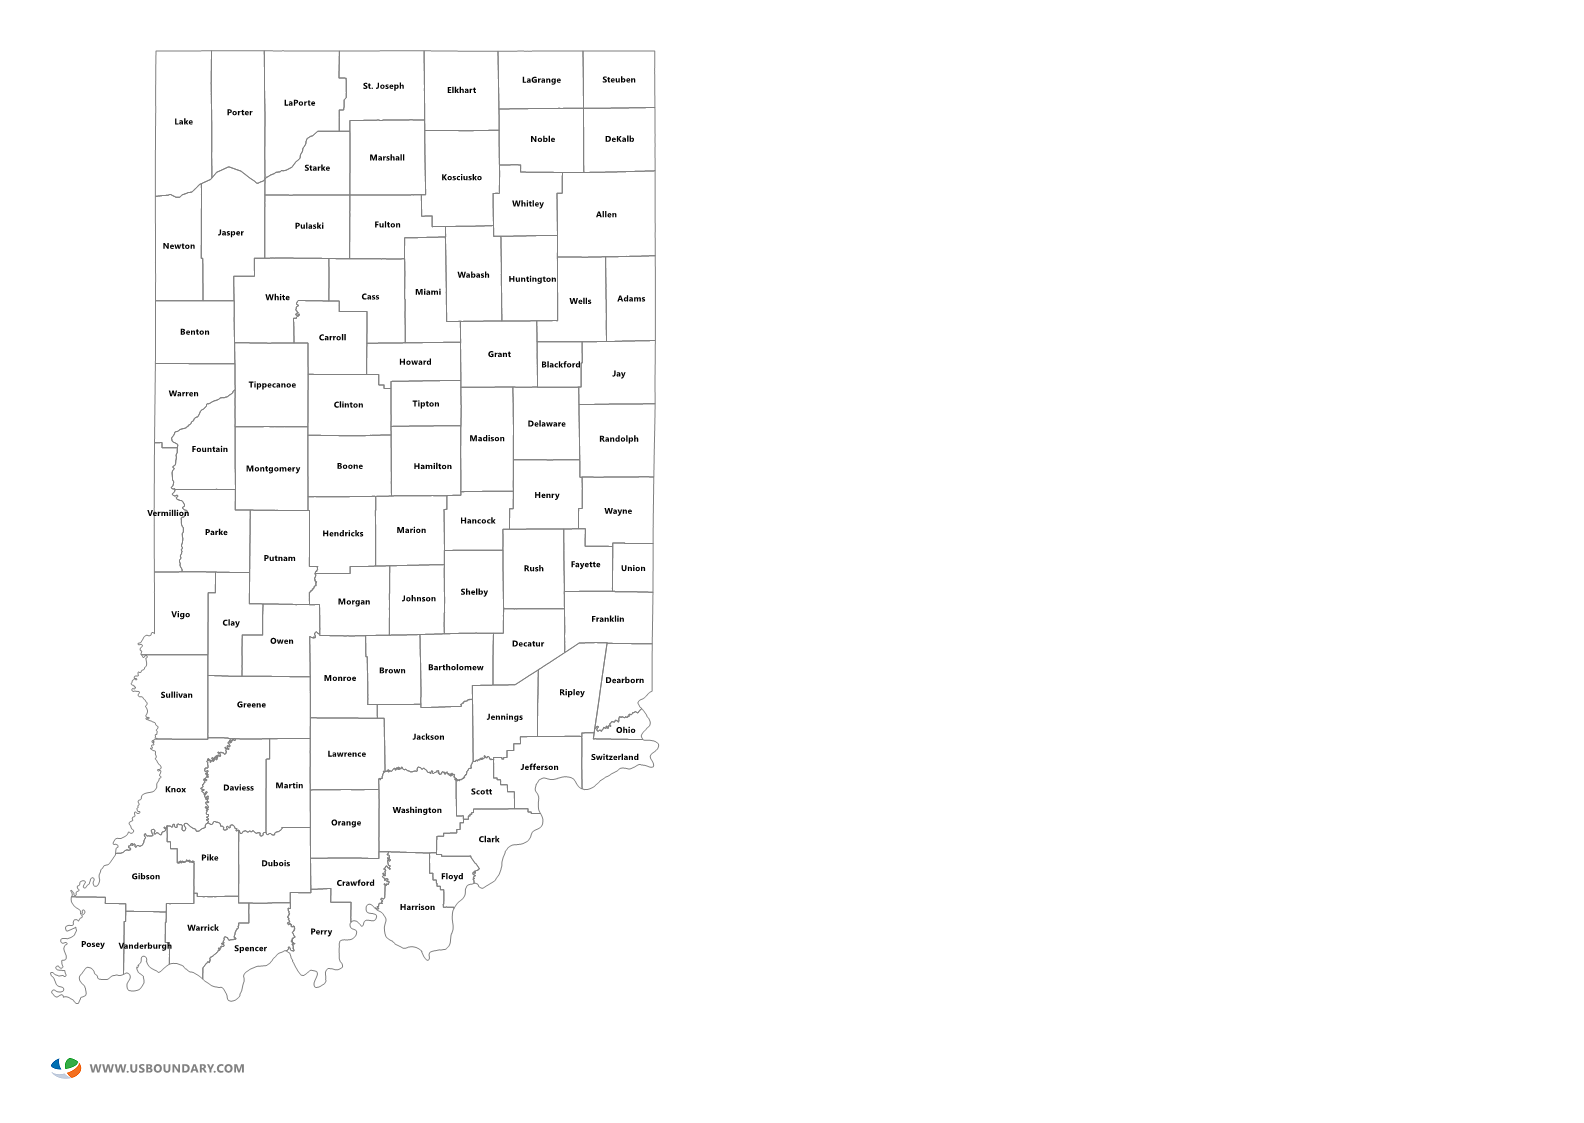 State Counties Maps Download - Map of state of indiana